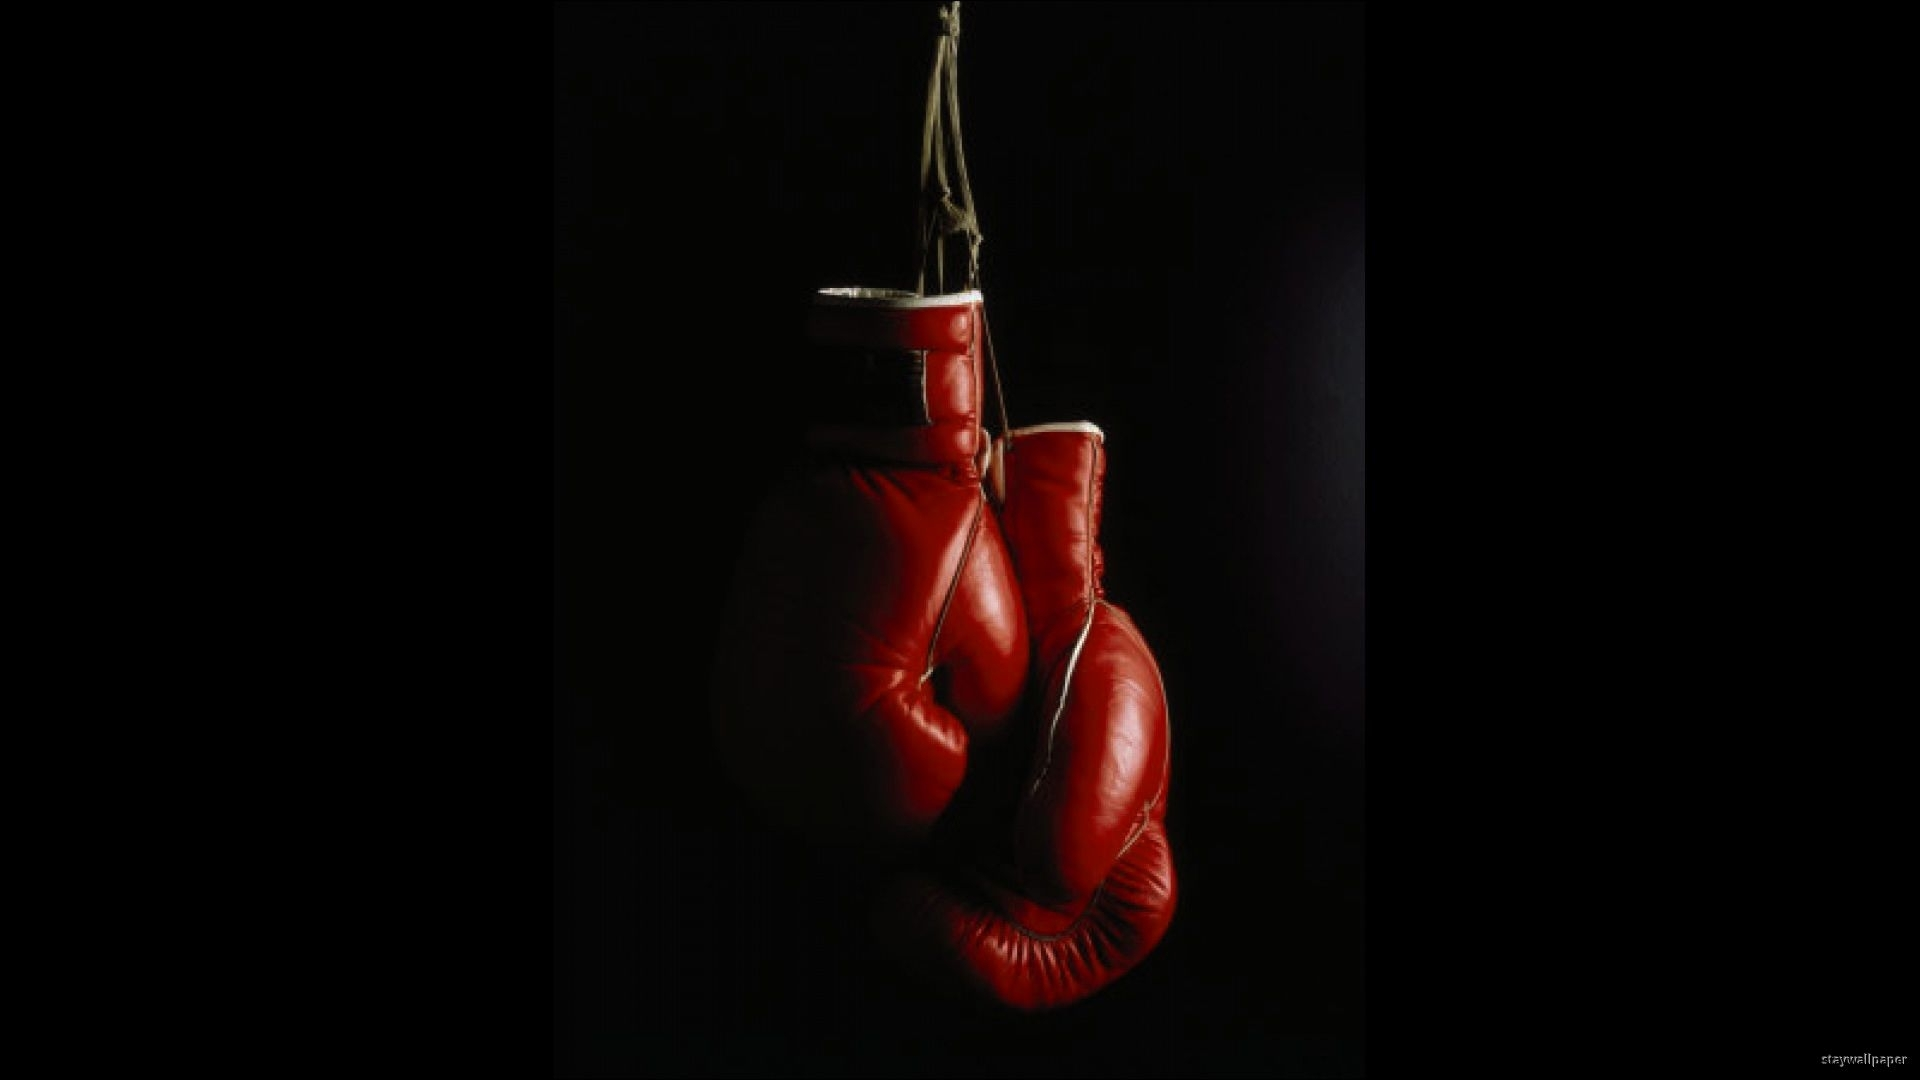 10 Best And Most Current Hanging Boxing Gloves Wallpaper For Desktop Computer With FULL HD 1080p 1920 X 1080 FREE DOWNLOAD